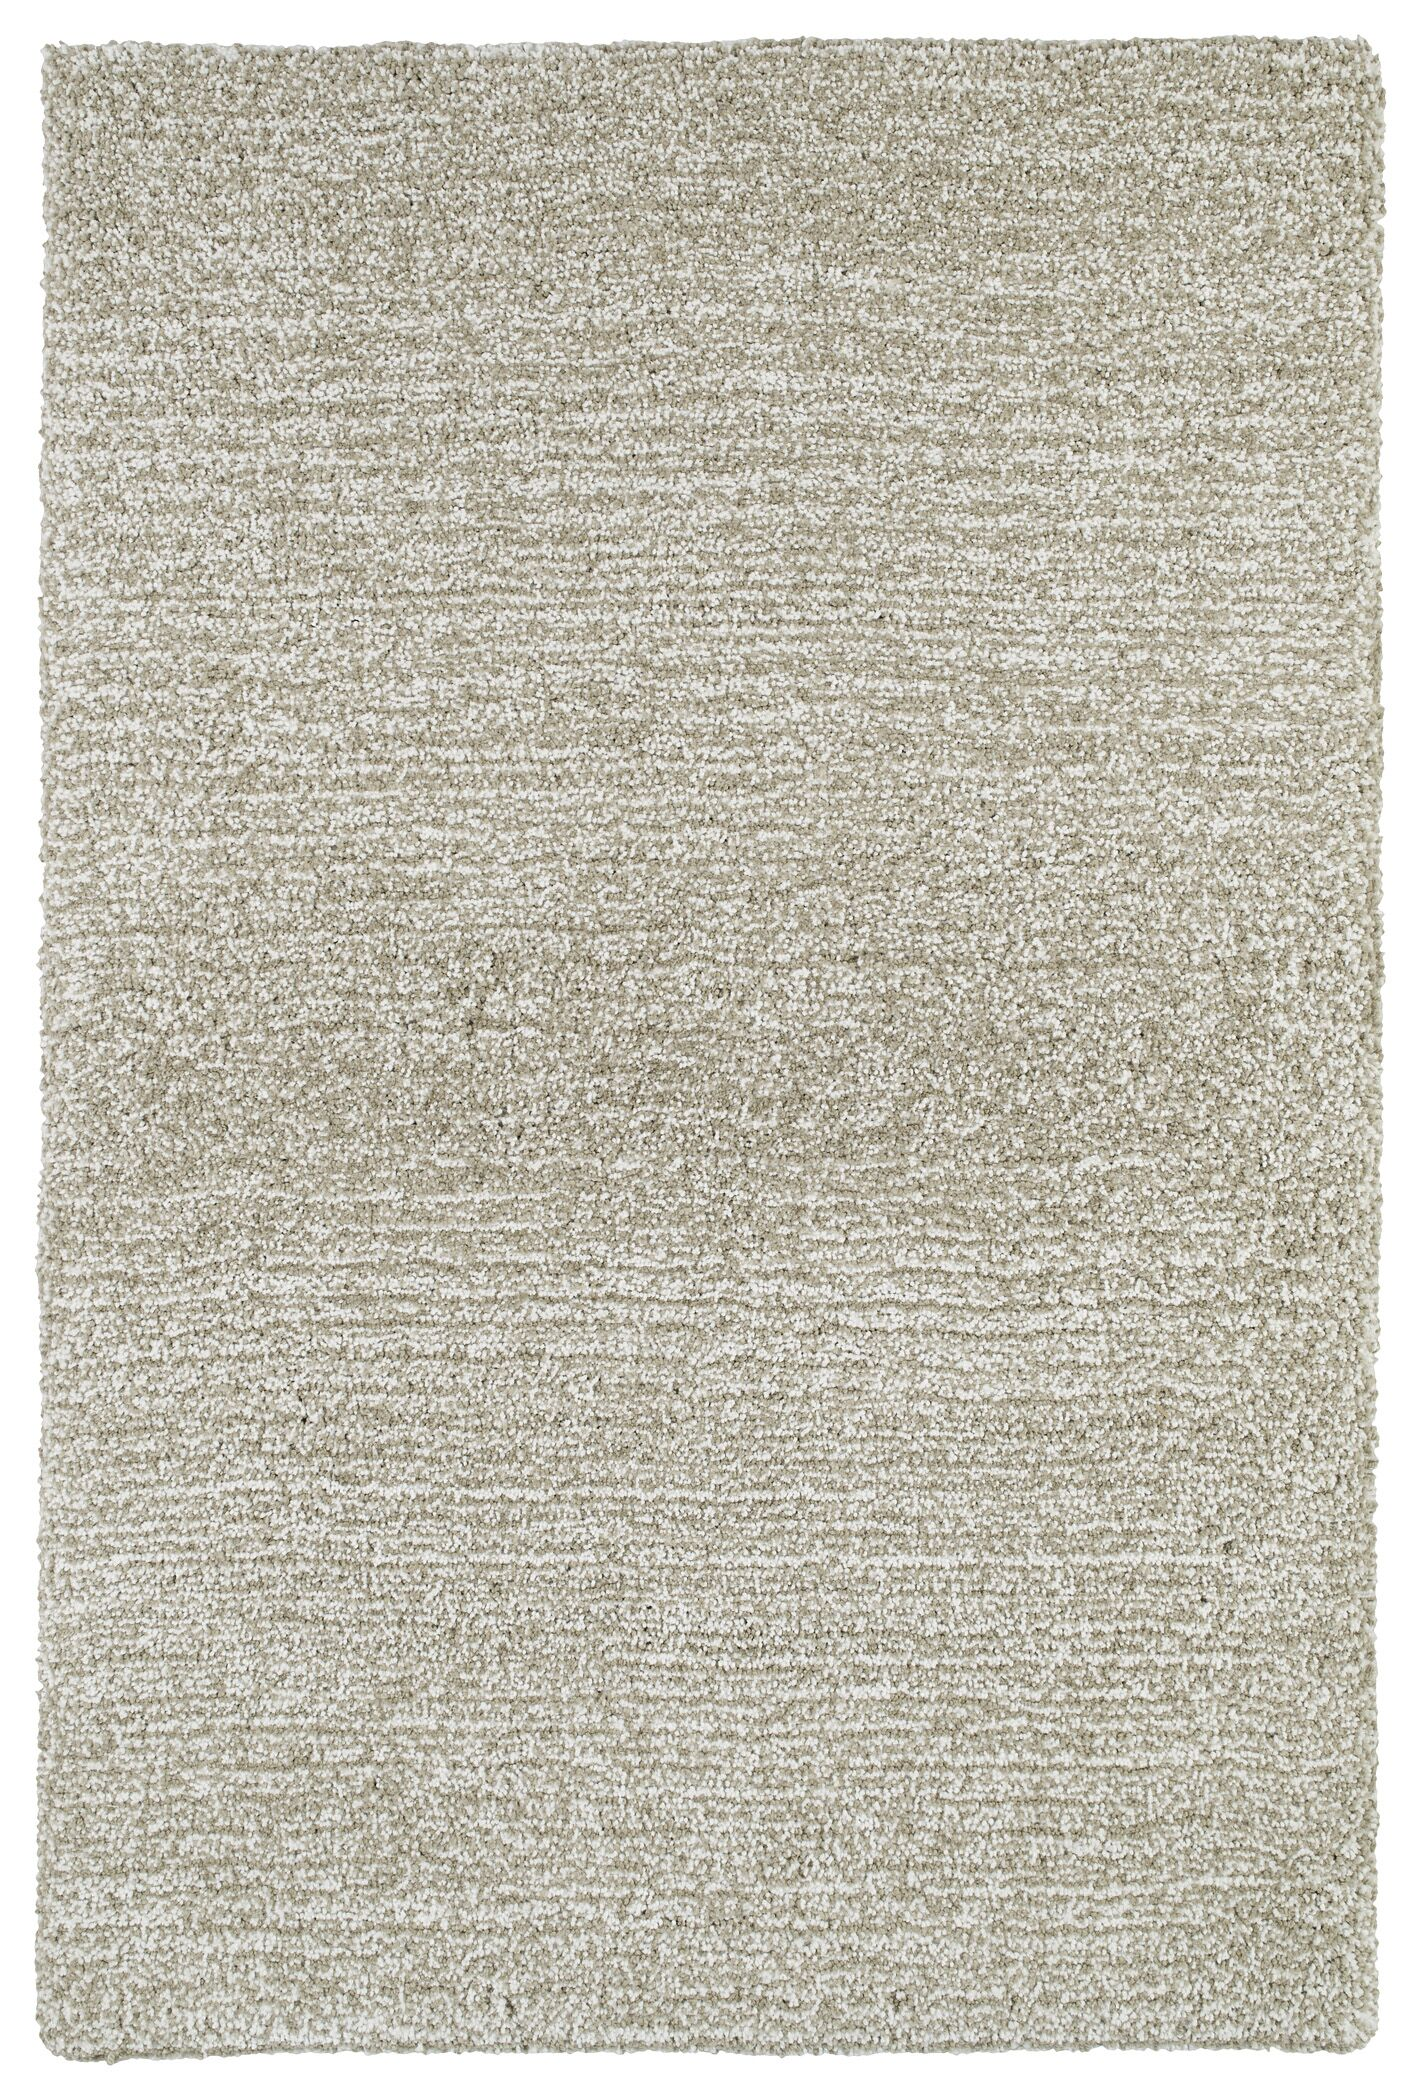 Elverson Hand Tufted Beige Area Rug Rug Size: Rectangle 8' x 10'